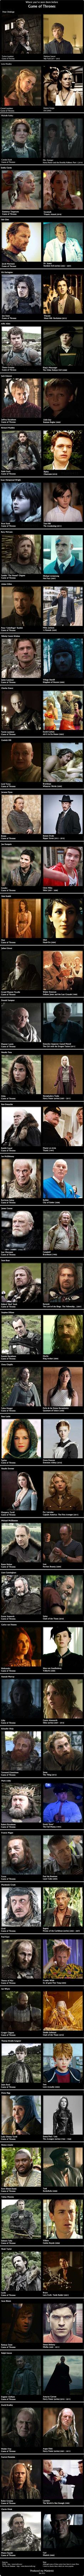 You'd be amazed where you've seen some of the Game of Thrones actors before!